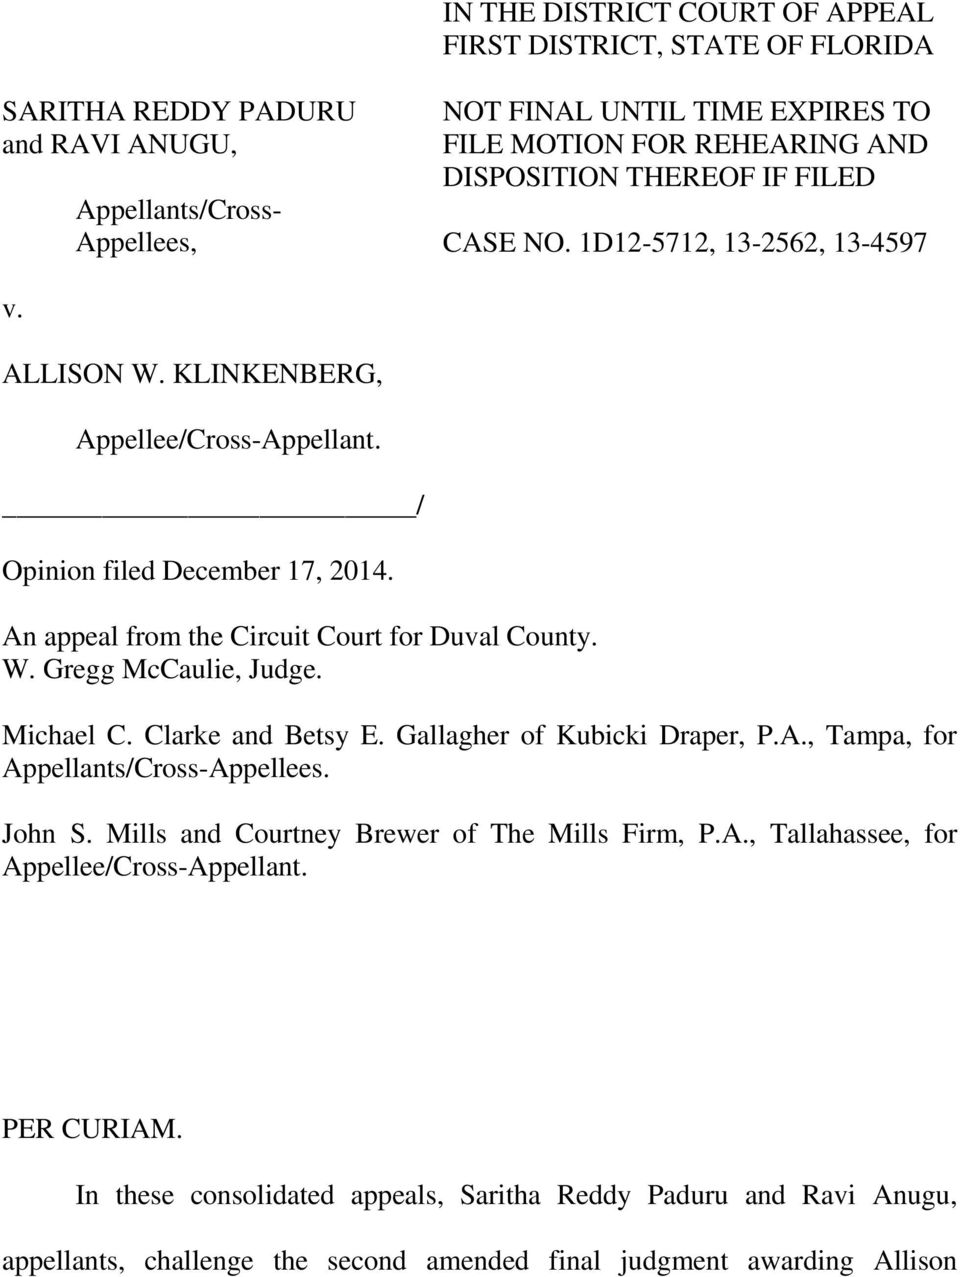 An appeal from the Circuit Court for Duval County. W. Gregg McCaulie, Judge. Michael C. Clarke and Betsy E. Gallagher of Kubicki Draper, P.A., Tampa, for Appellants/Cross-Appellees. John S.